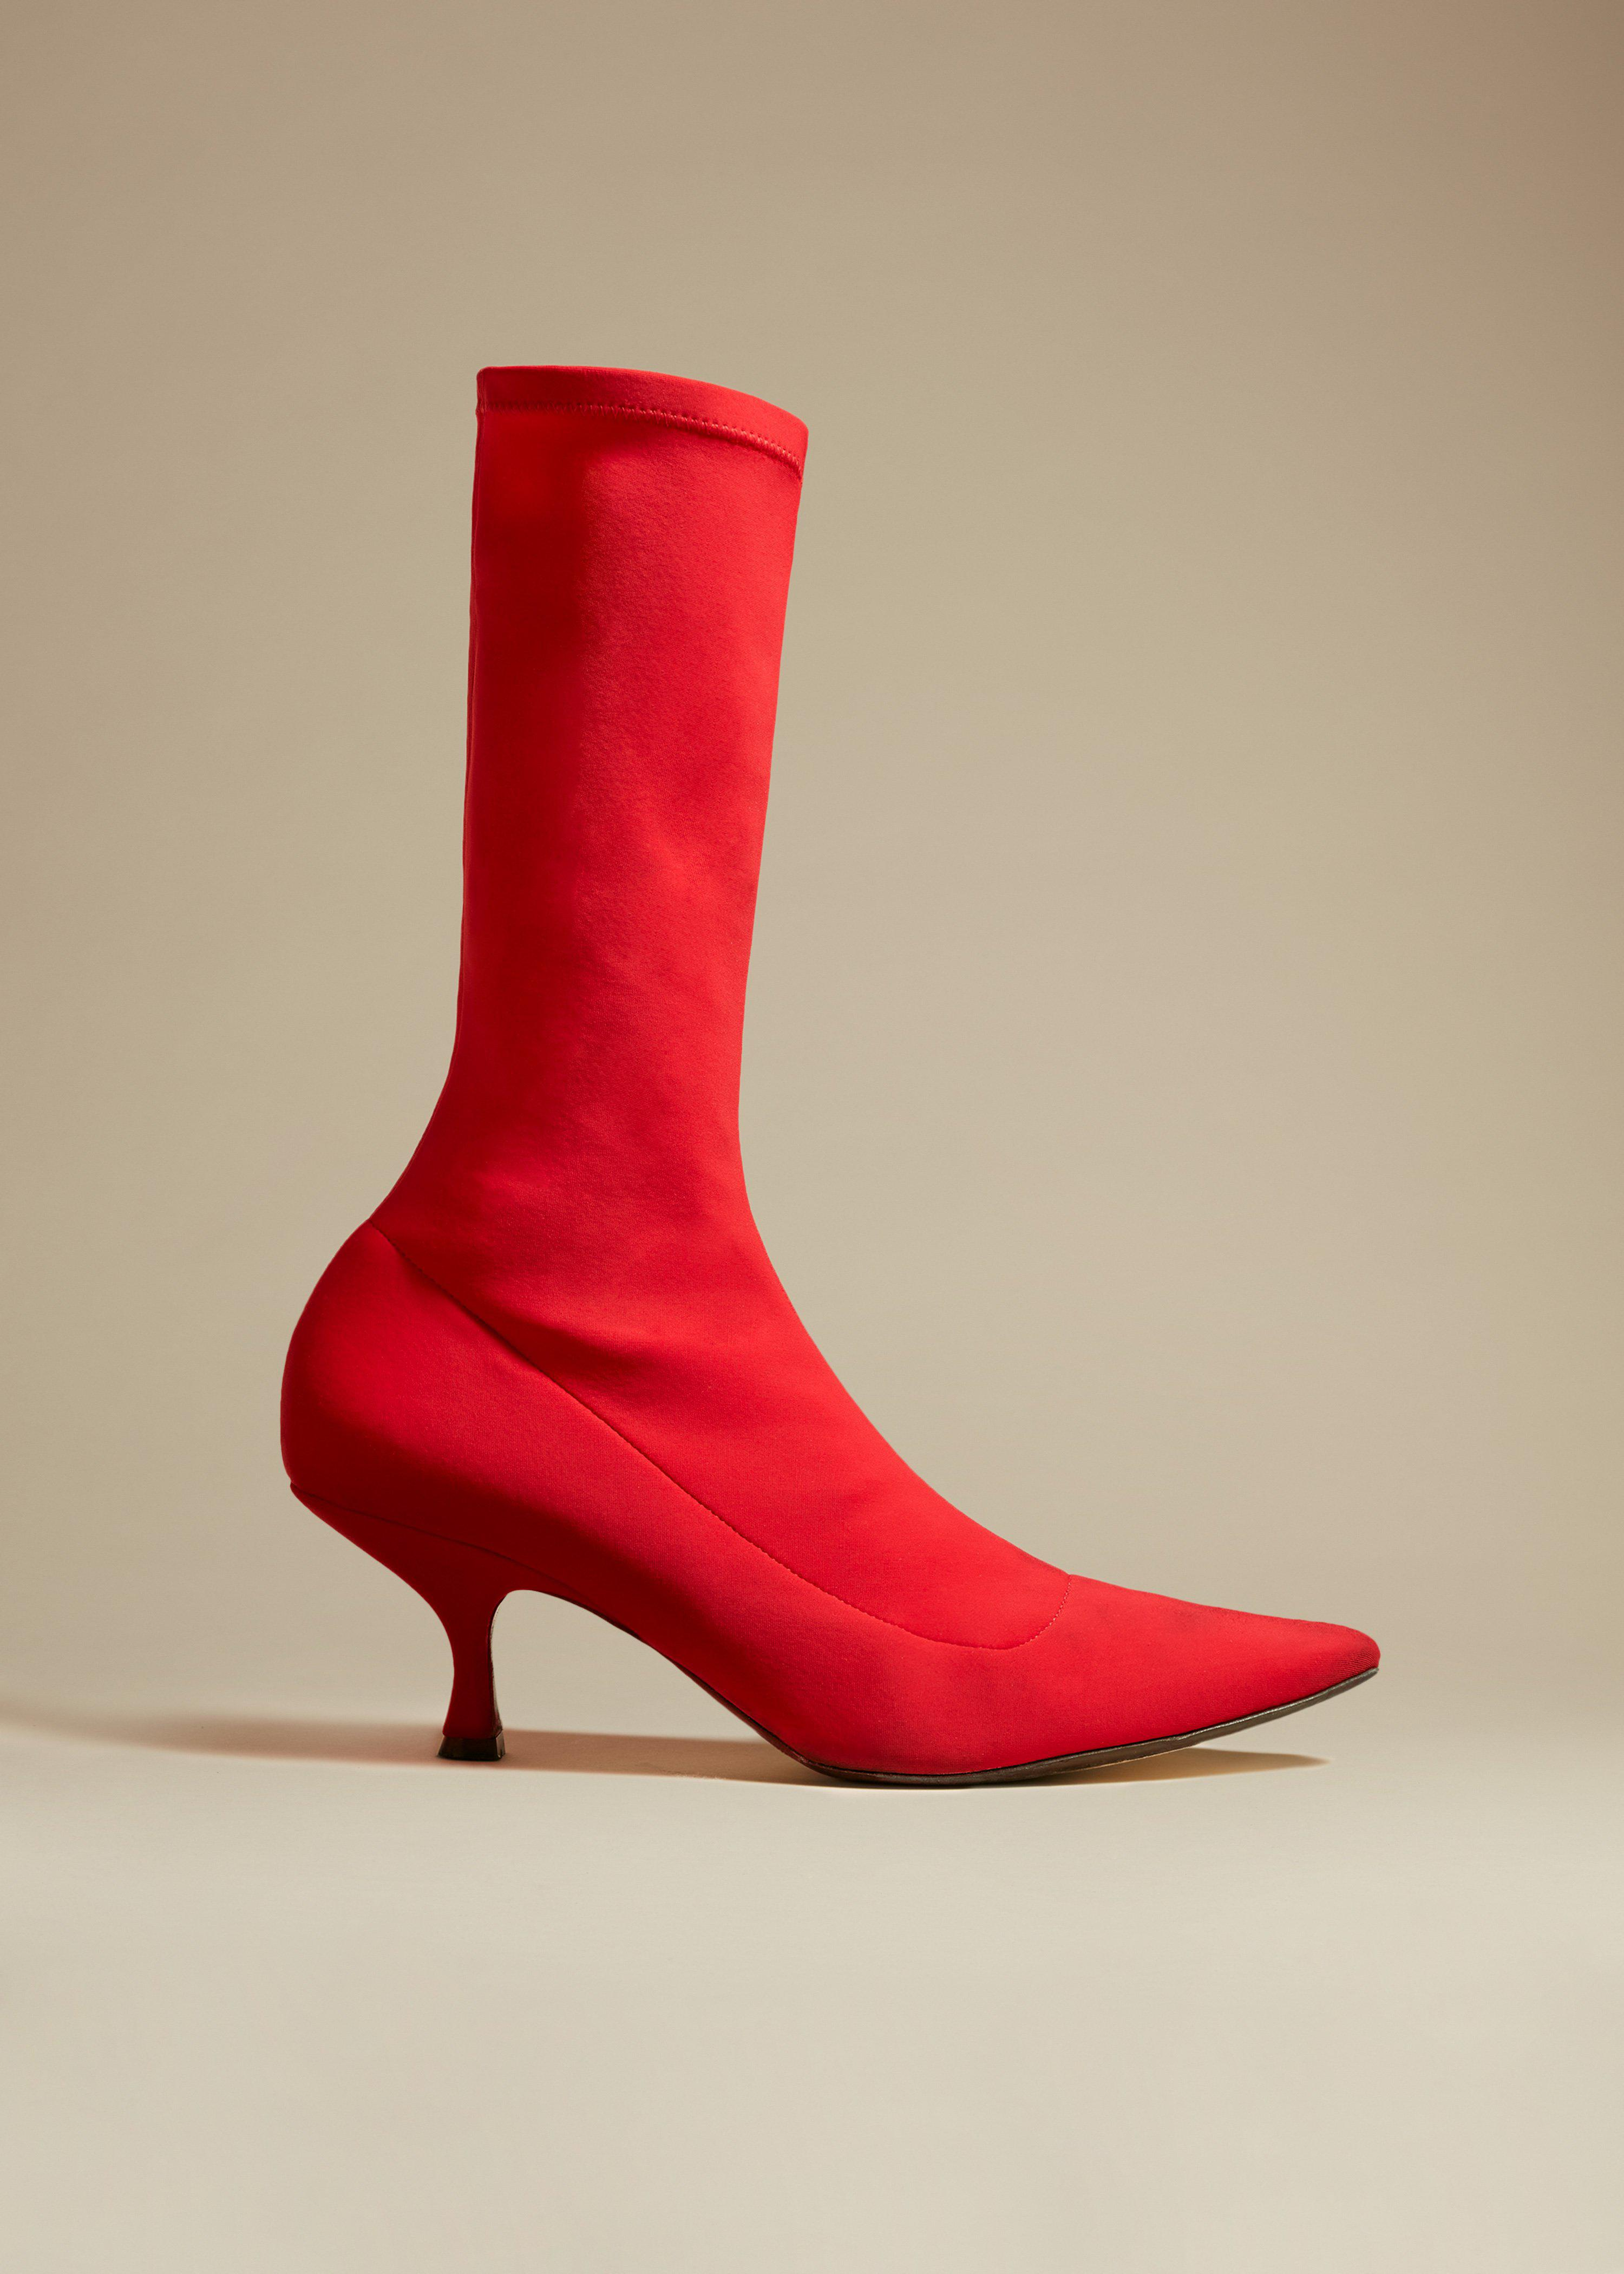 The Taylor Boot in Red